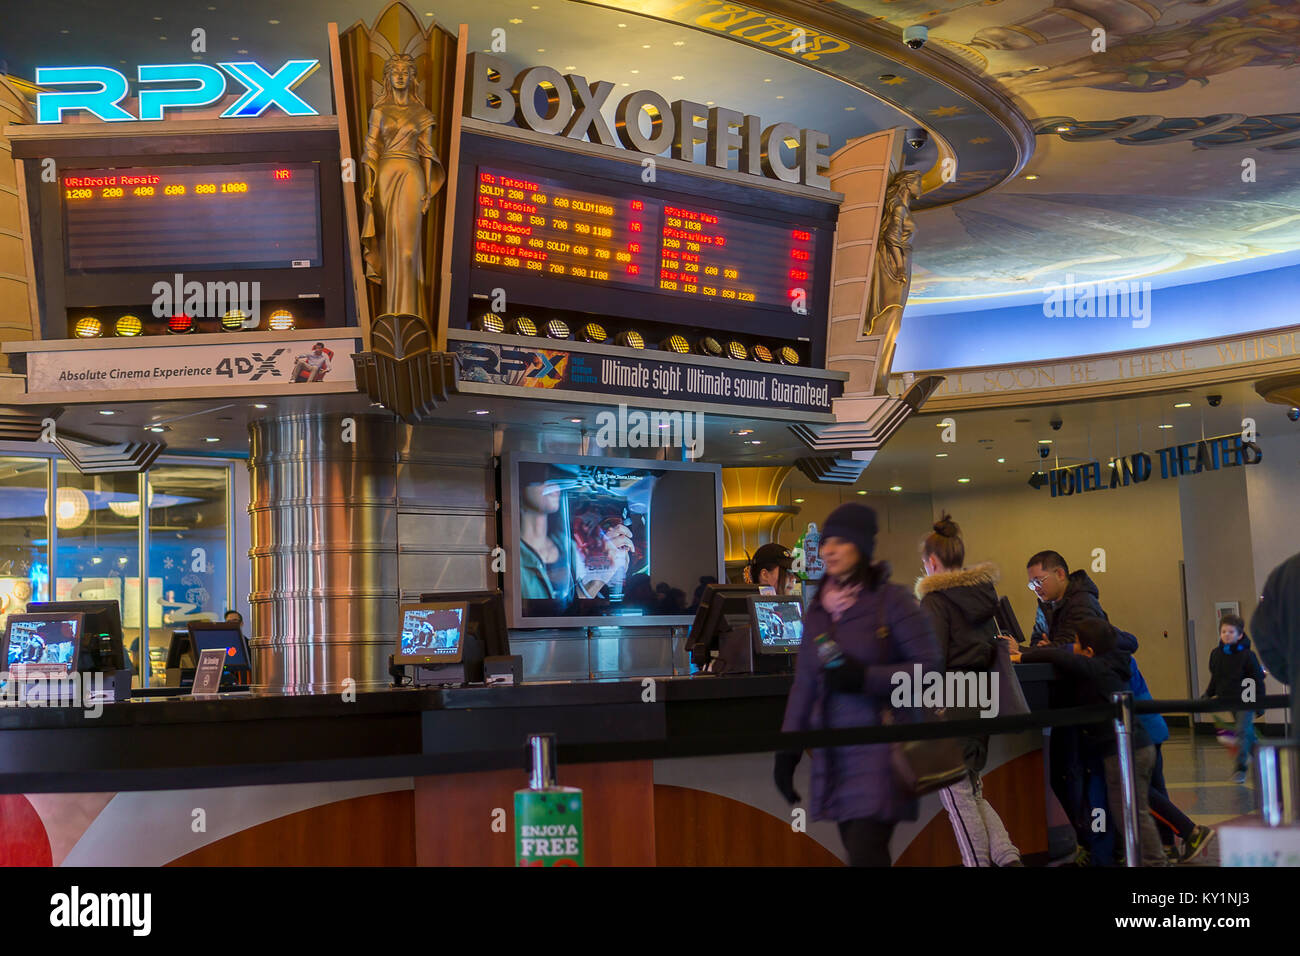 The Box Office In The Regal Cinemas Theater In Times Square